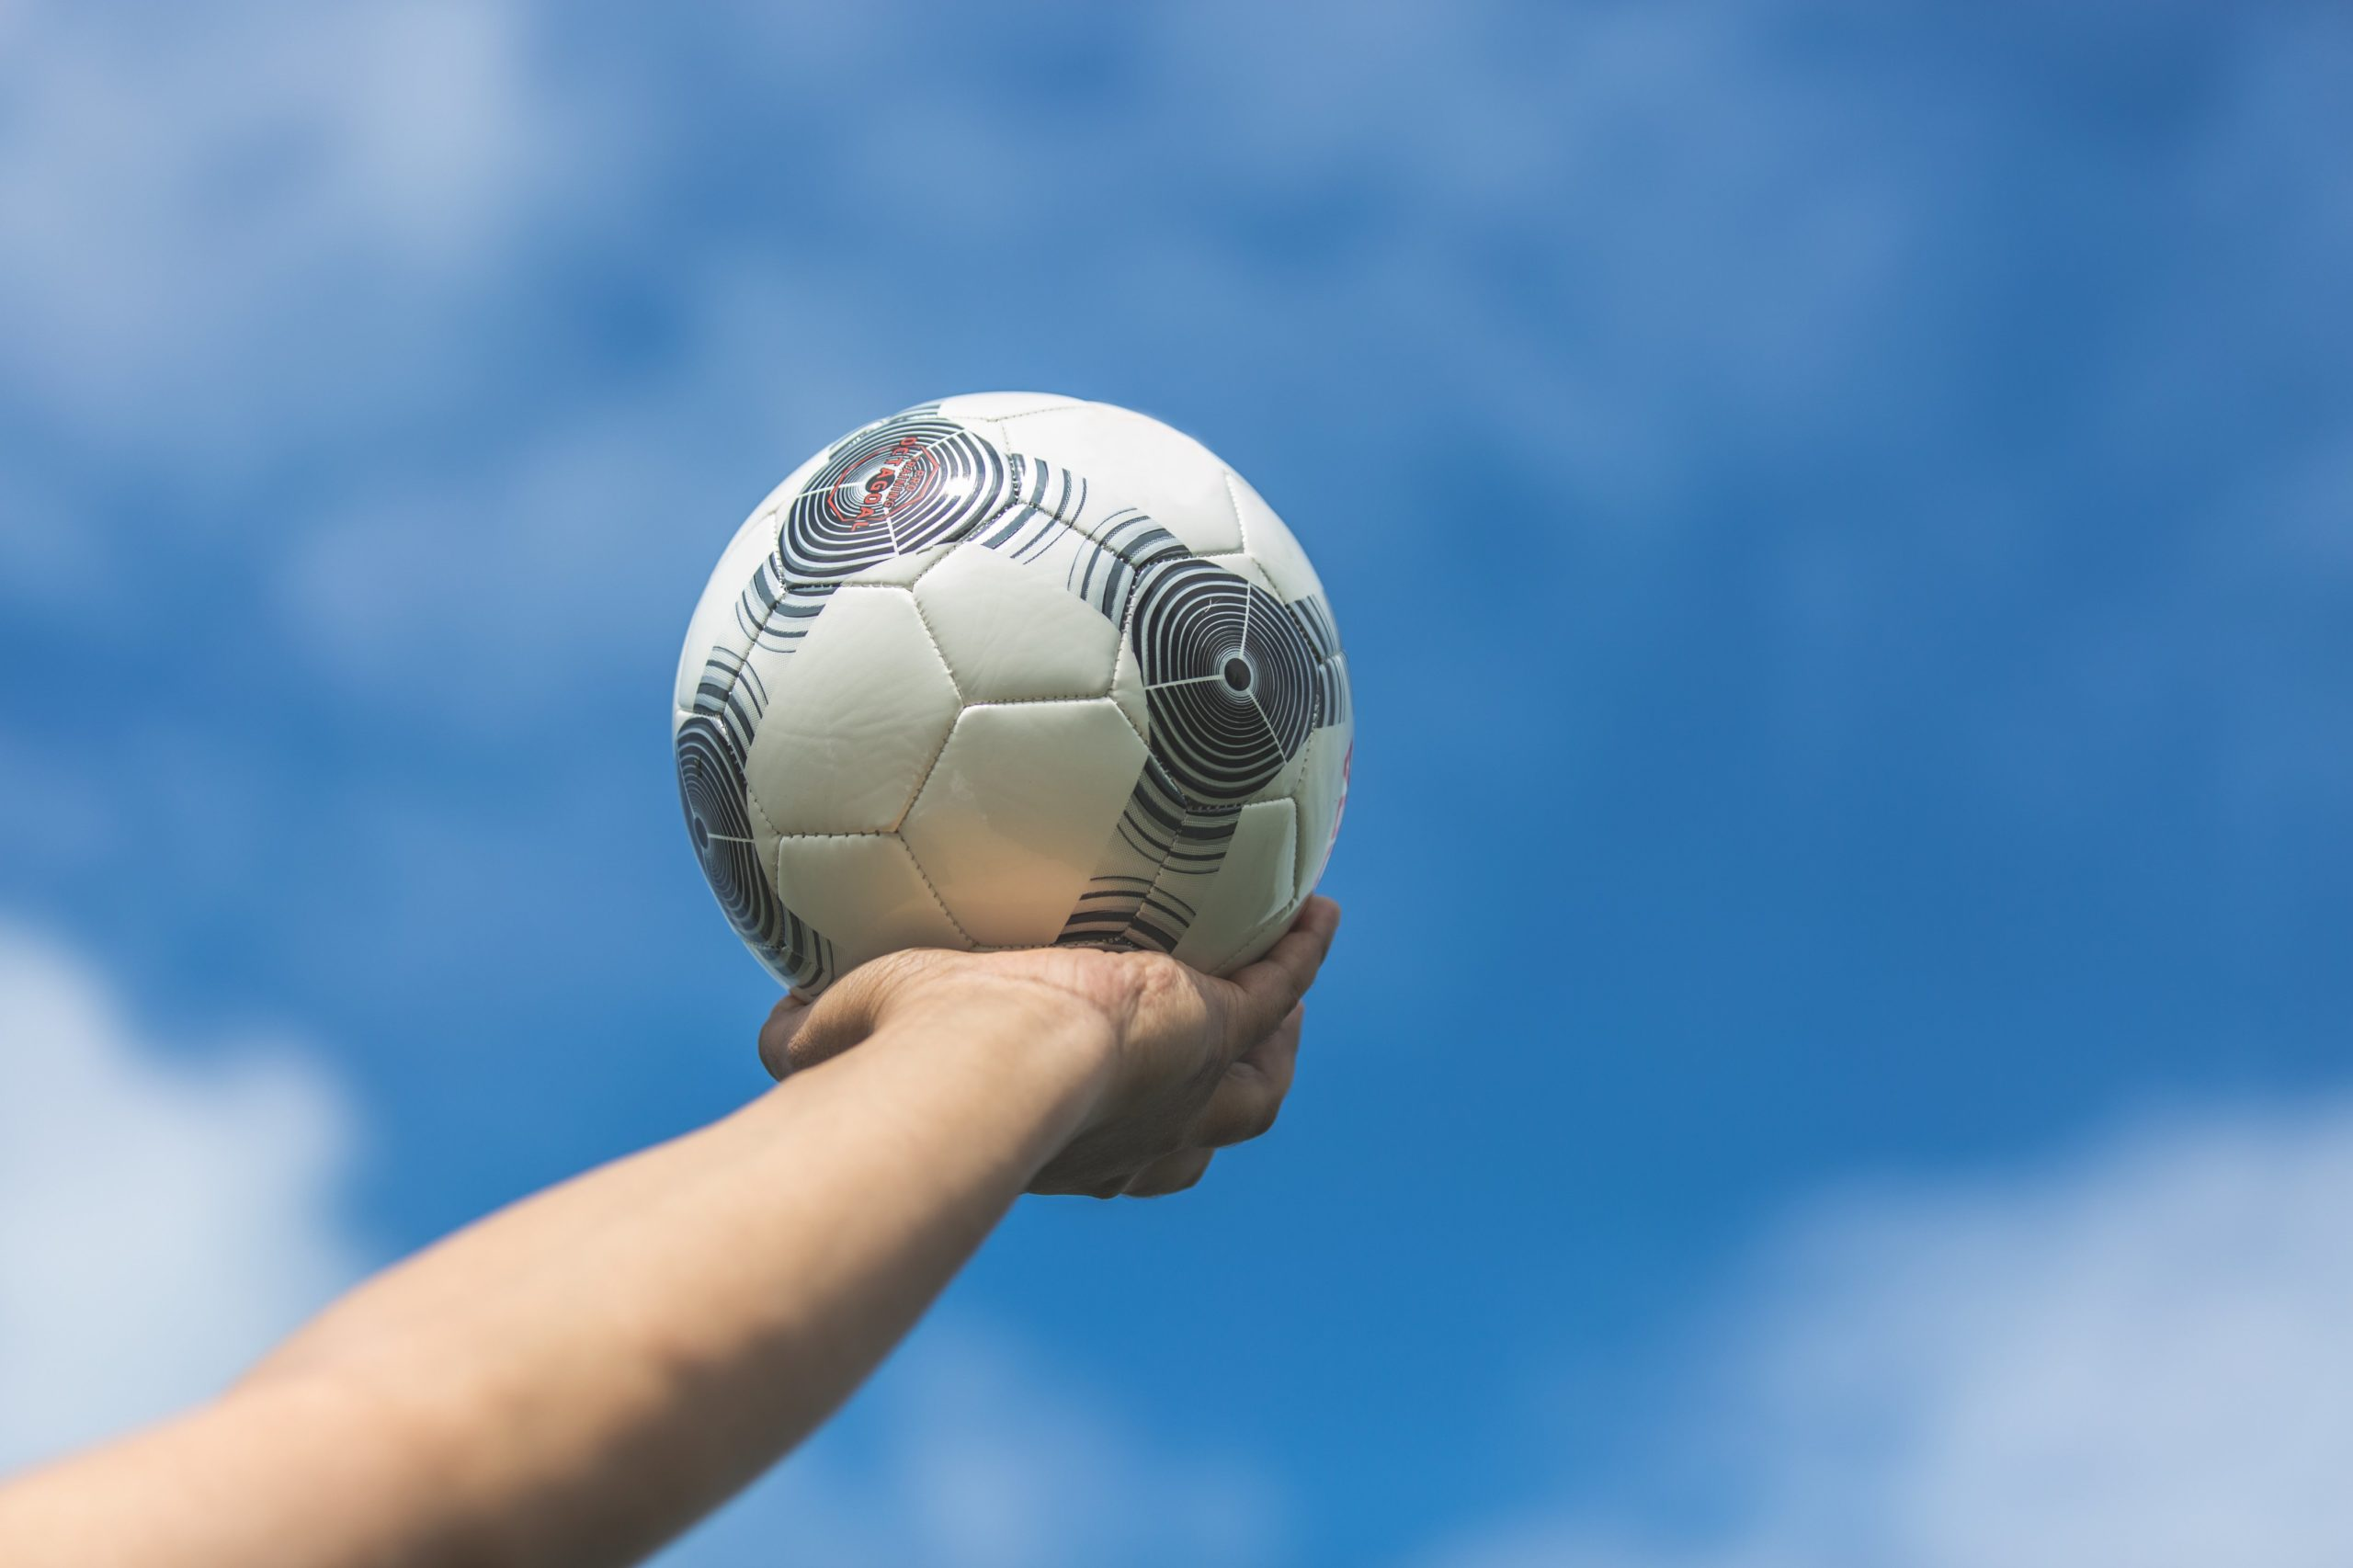 holding-out-soccer-ball-to-the-blue-sky